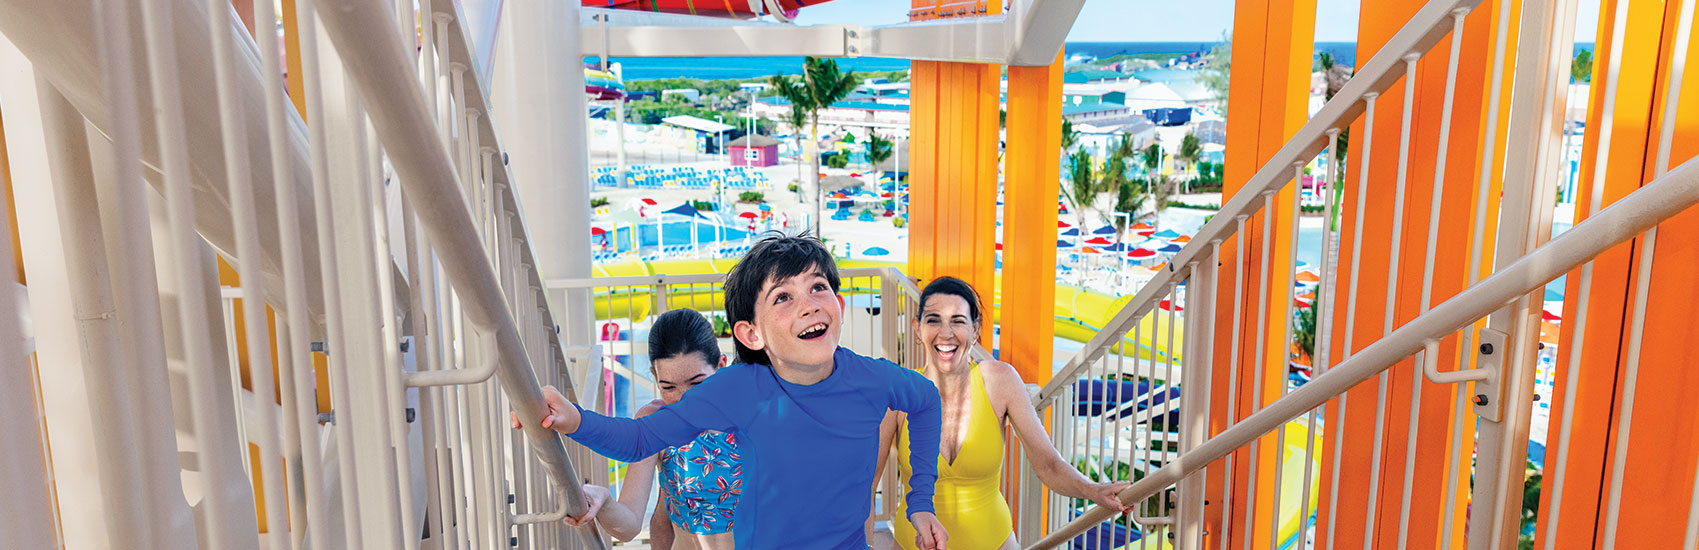 A Family Cruise Adventure with Royal Caribbean 1